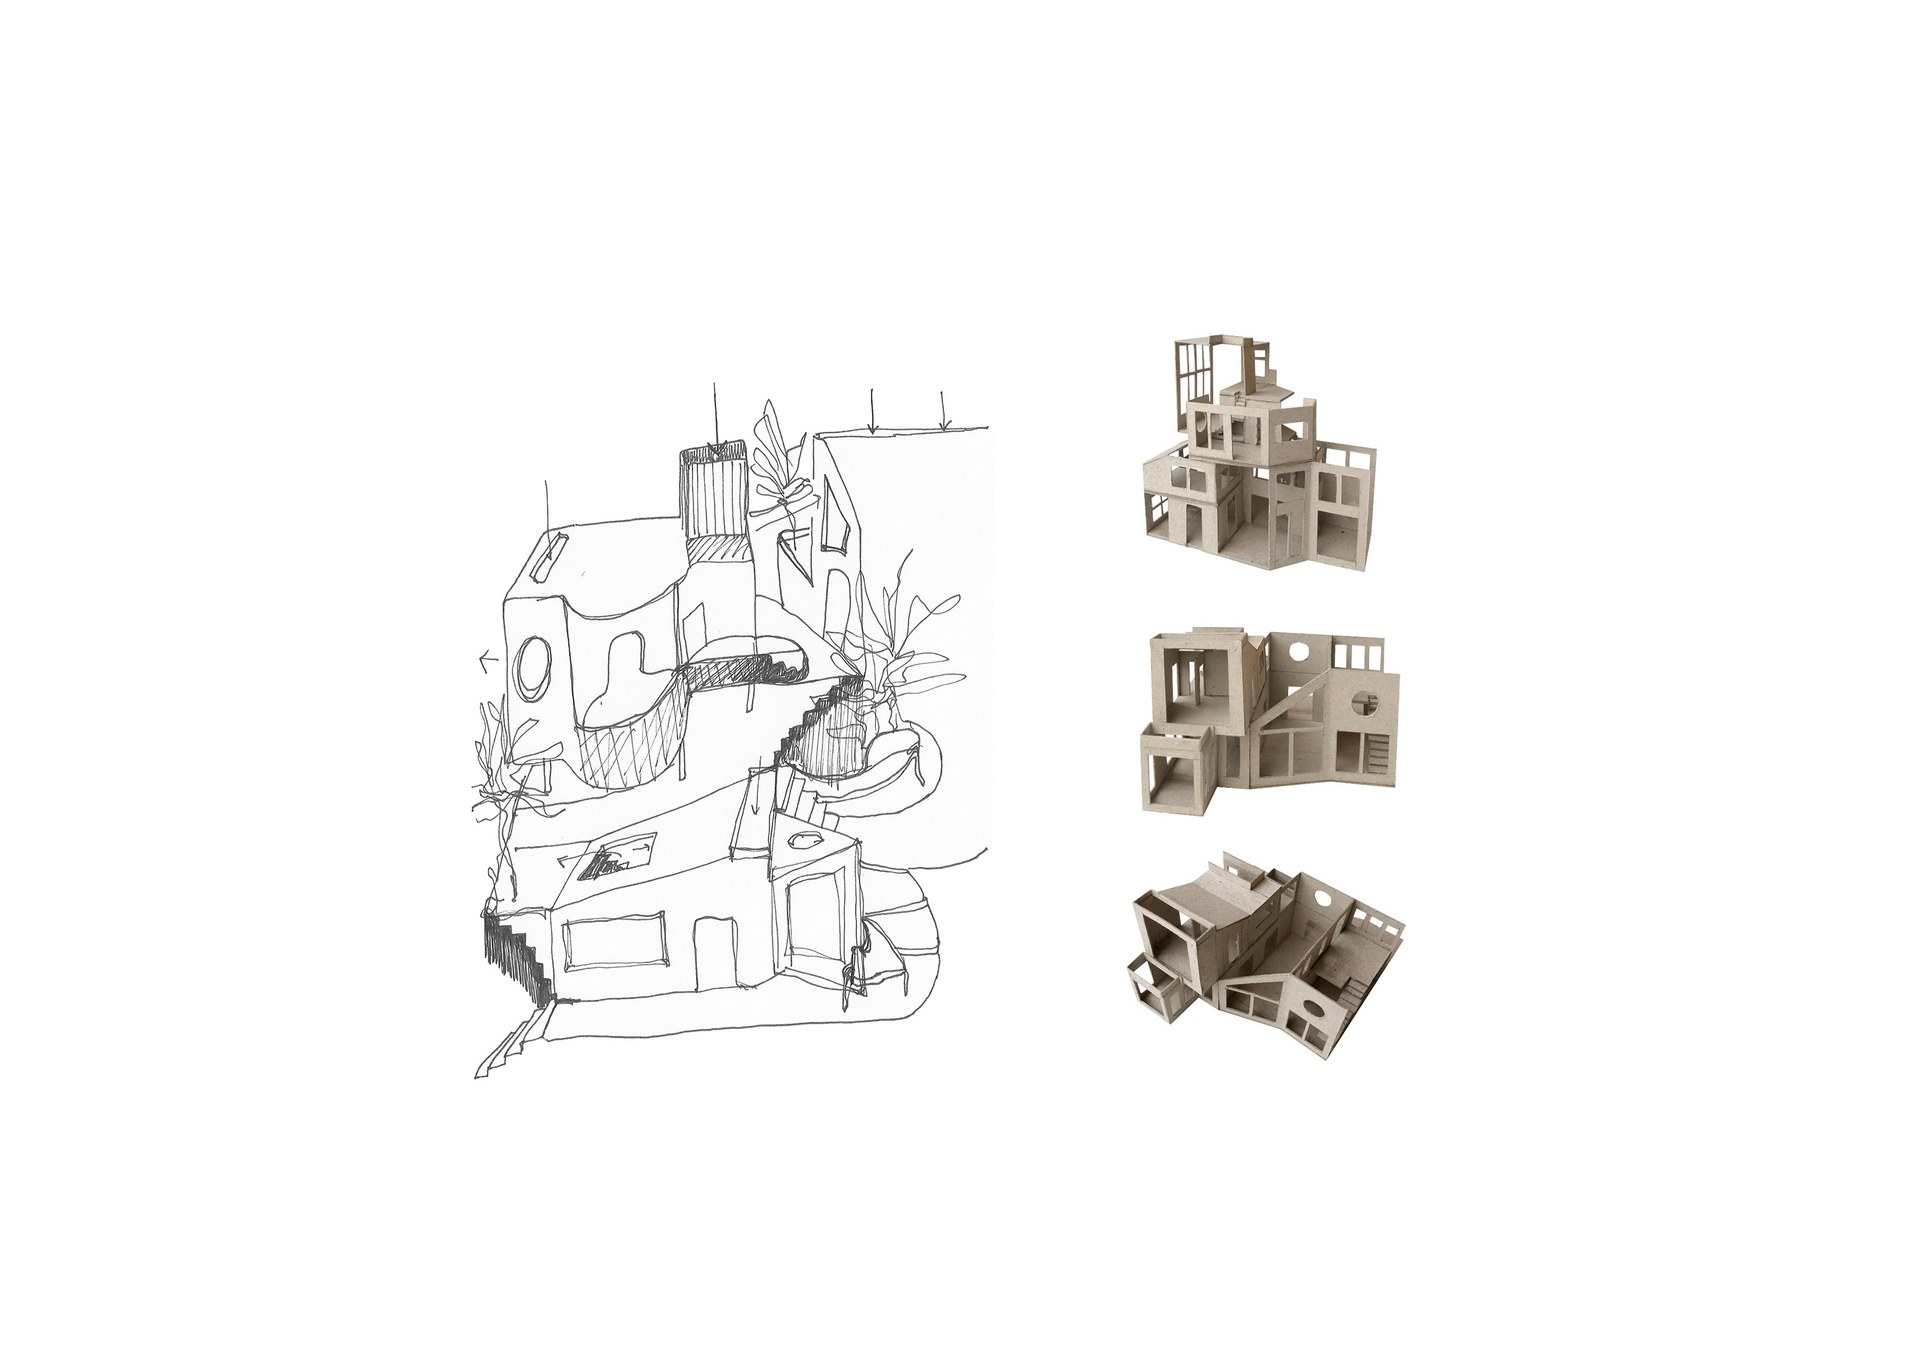 Sketches of dwelling units